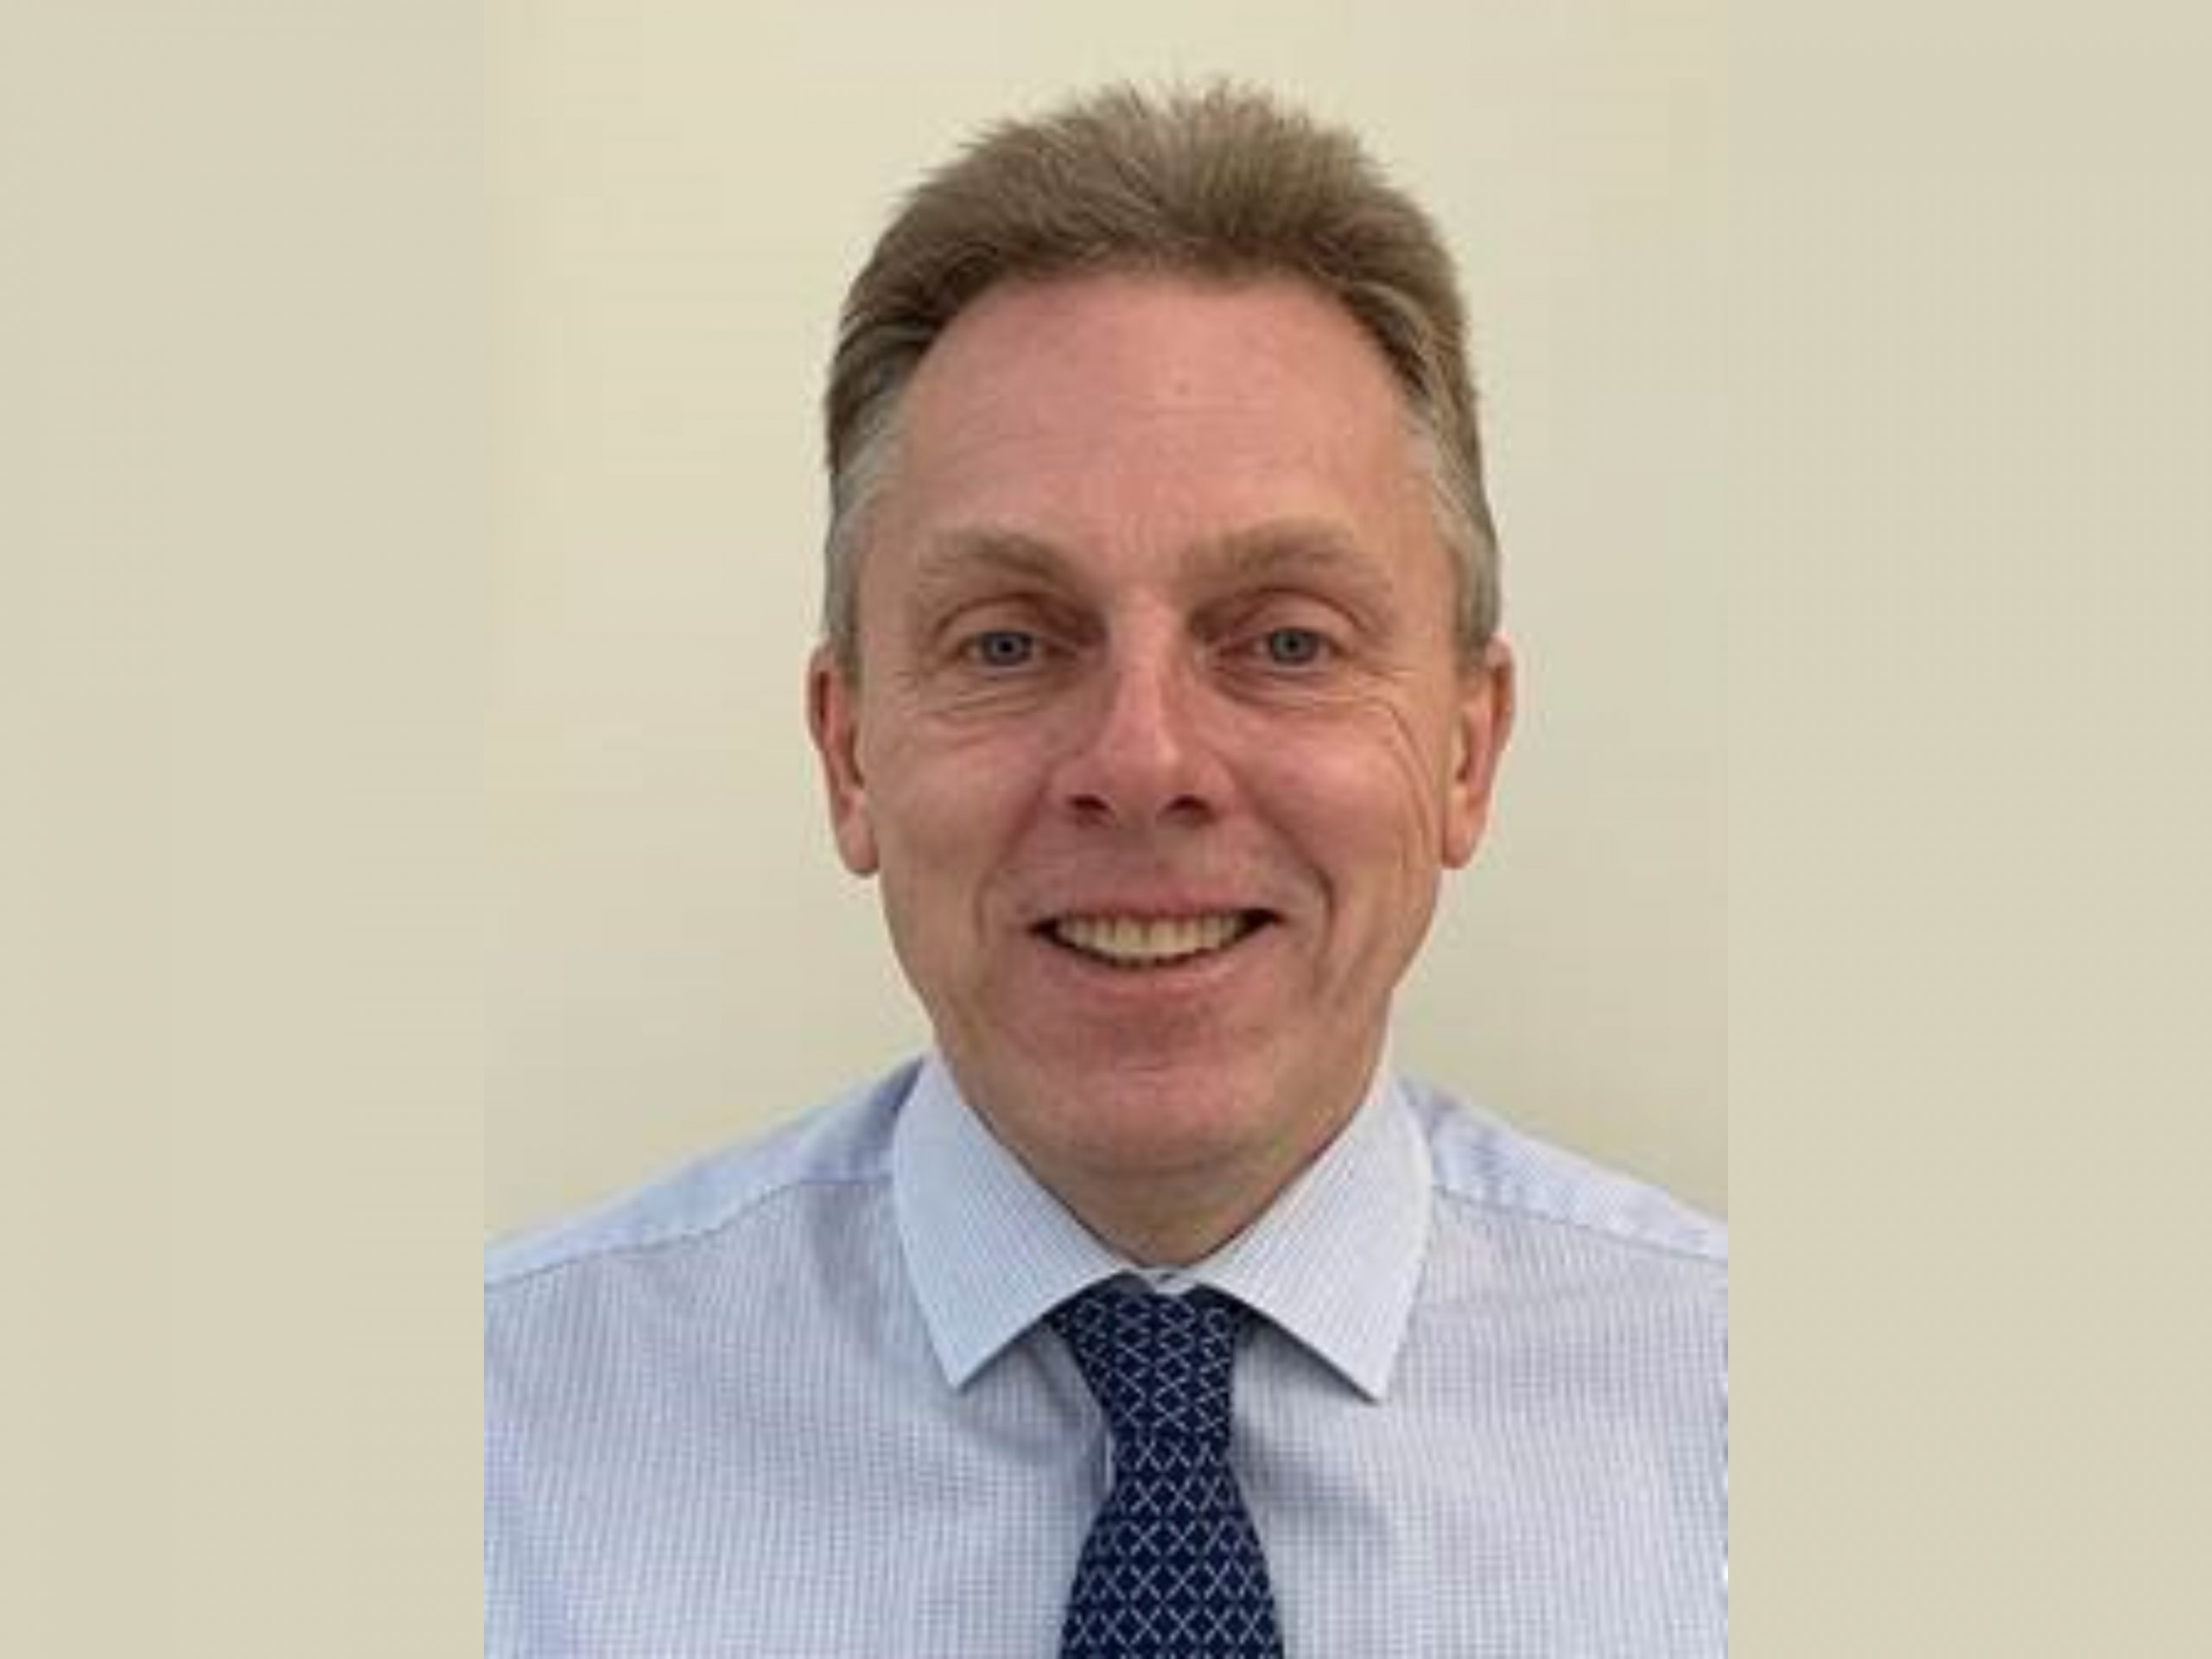 Care & Independence Managing Director Ian Jones Appointed to BHTA Board of Directors